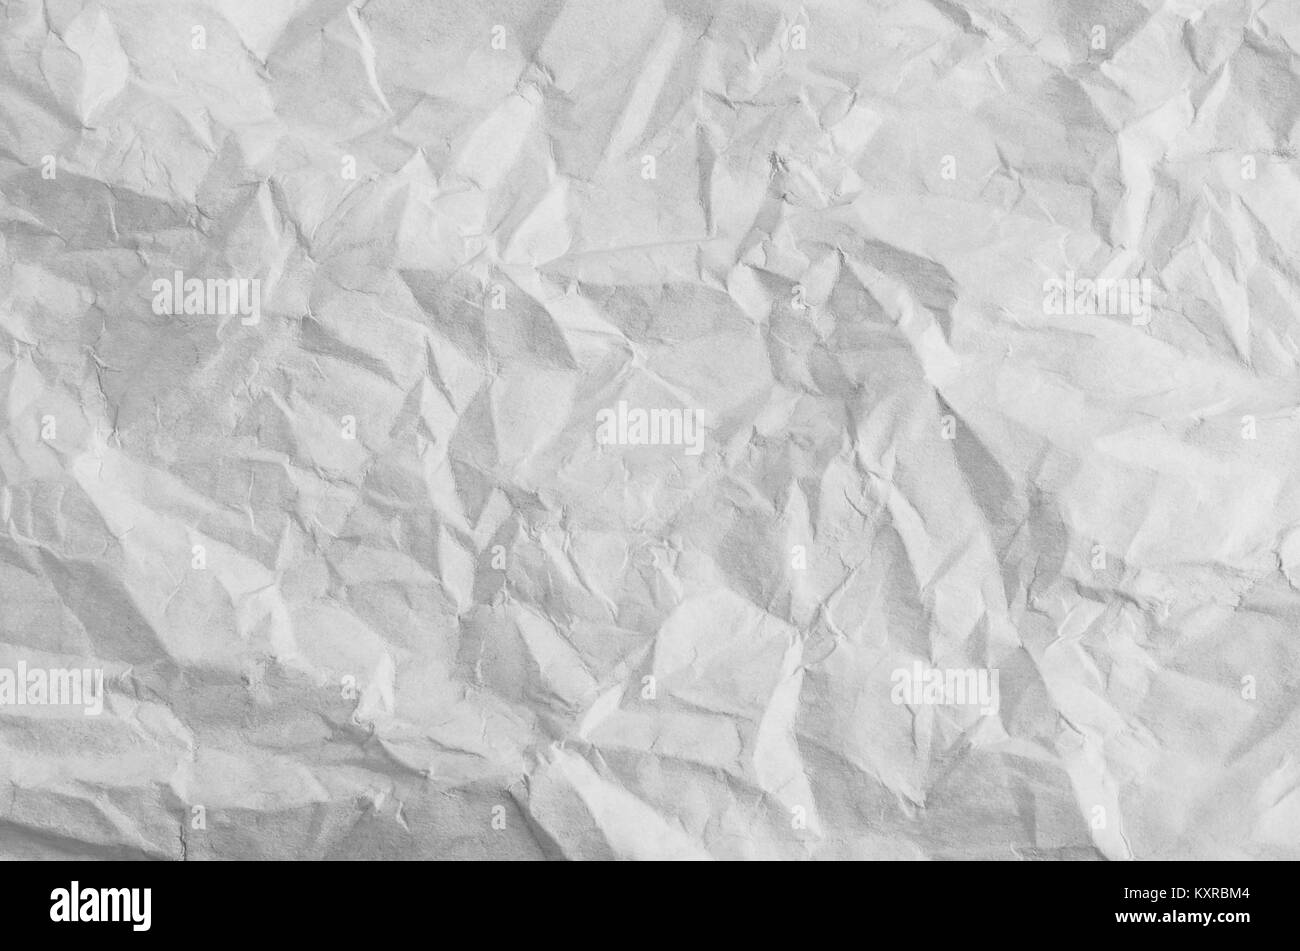 Crumpled, creased and unfolded white paper background texture. - Stock Image